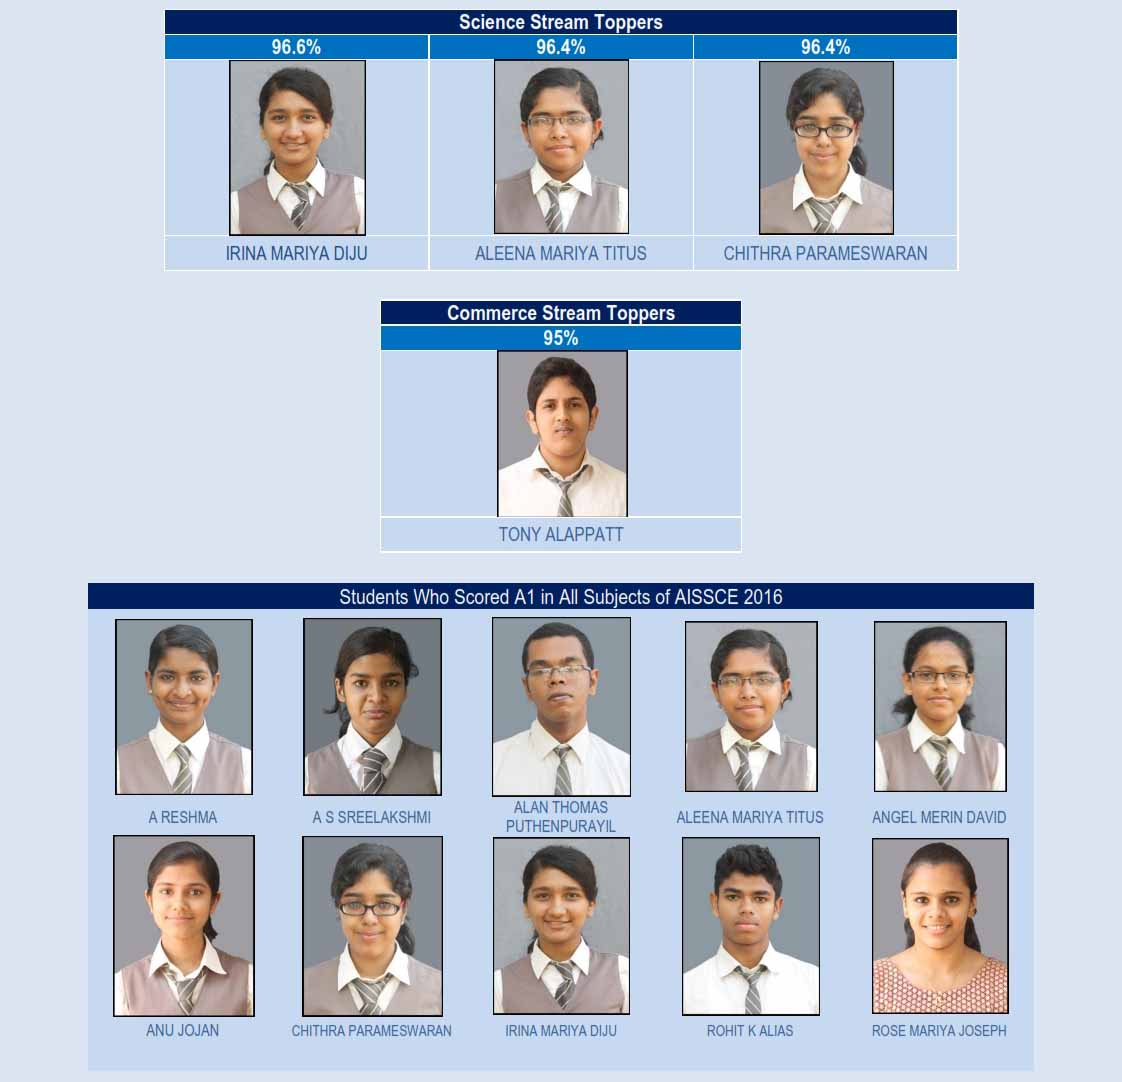 PHOTOS OF TOPPERS & ALL A1 STUDENTS - Class XII 2015-16